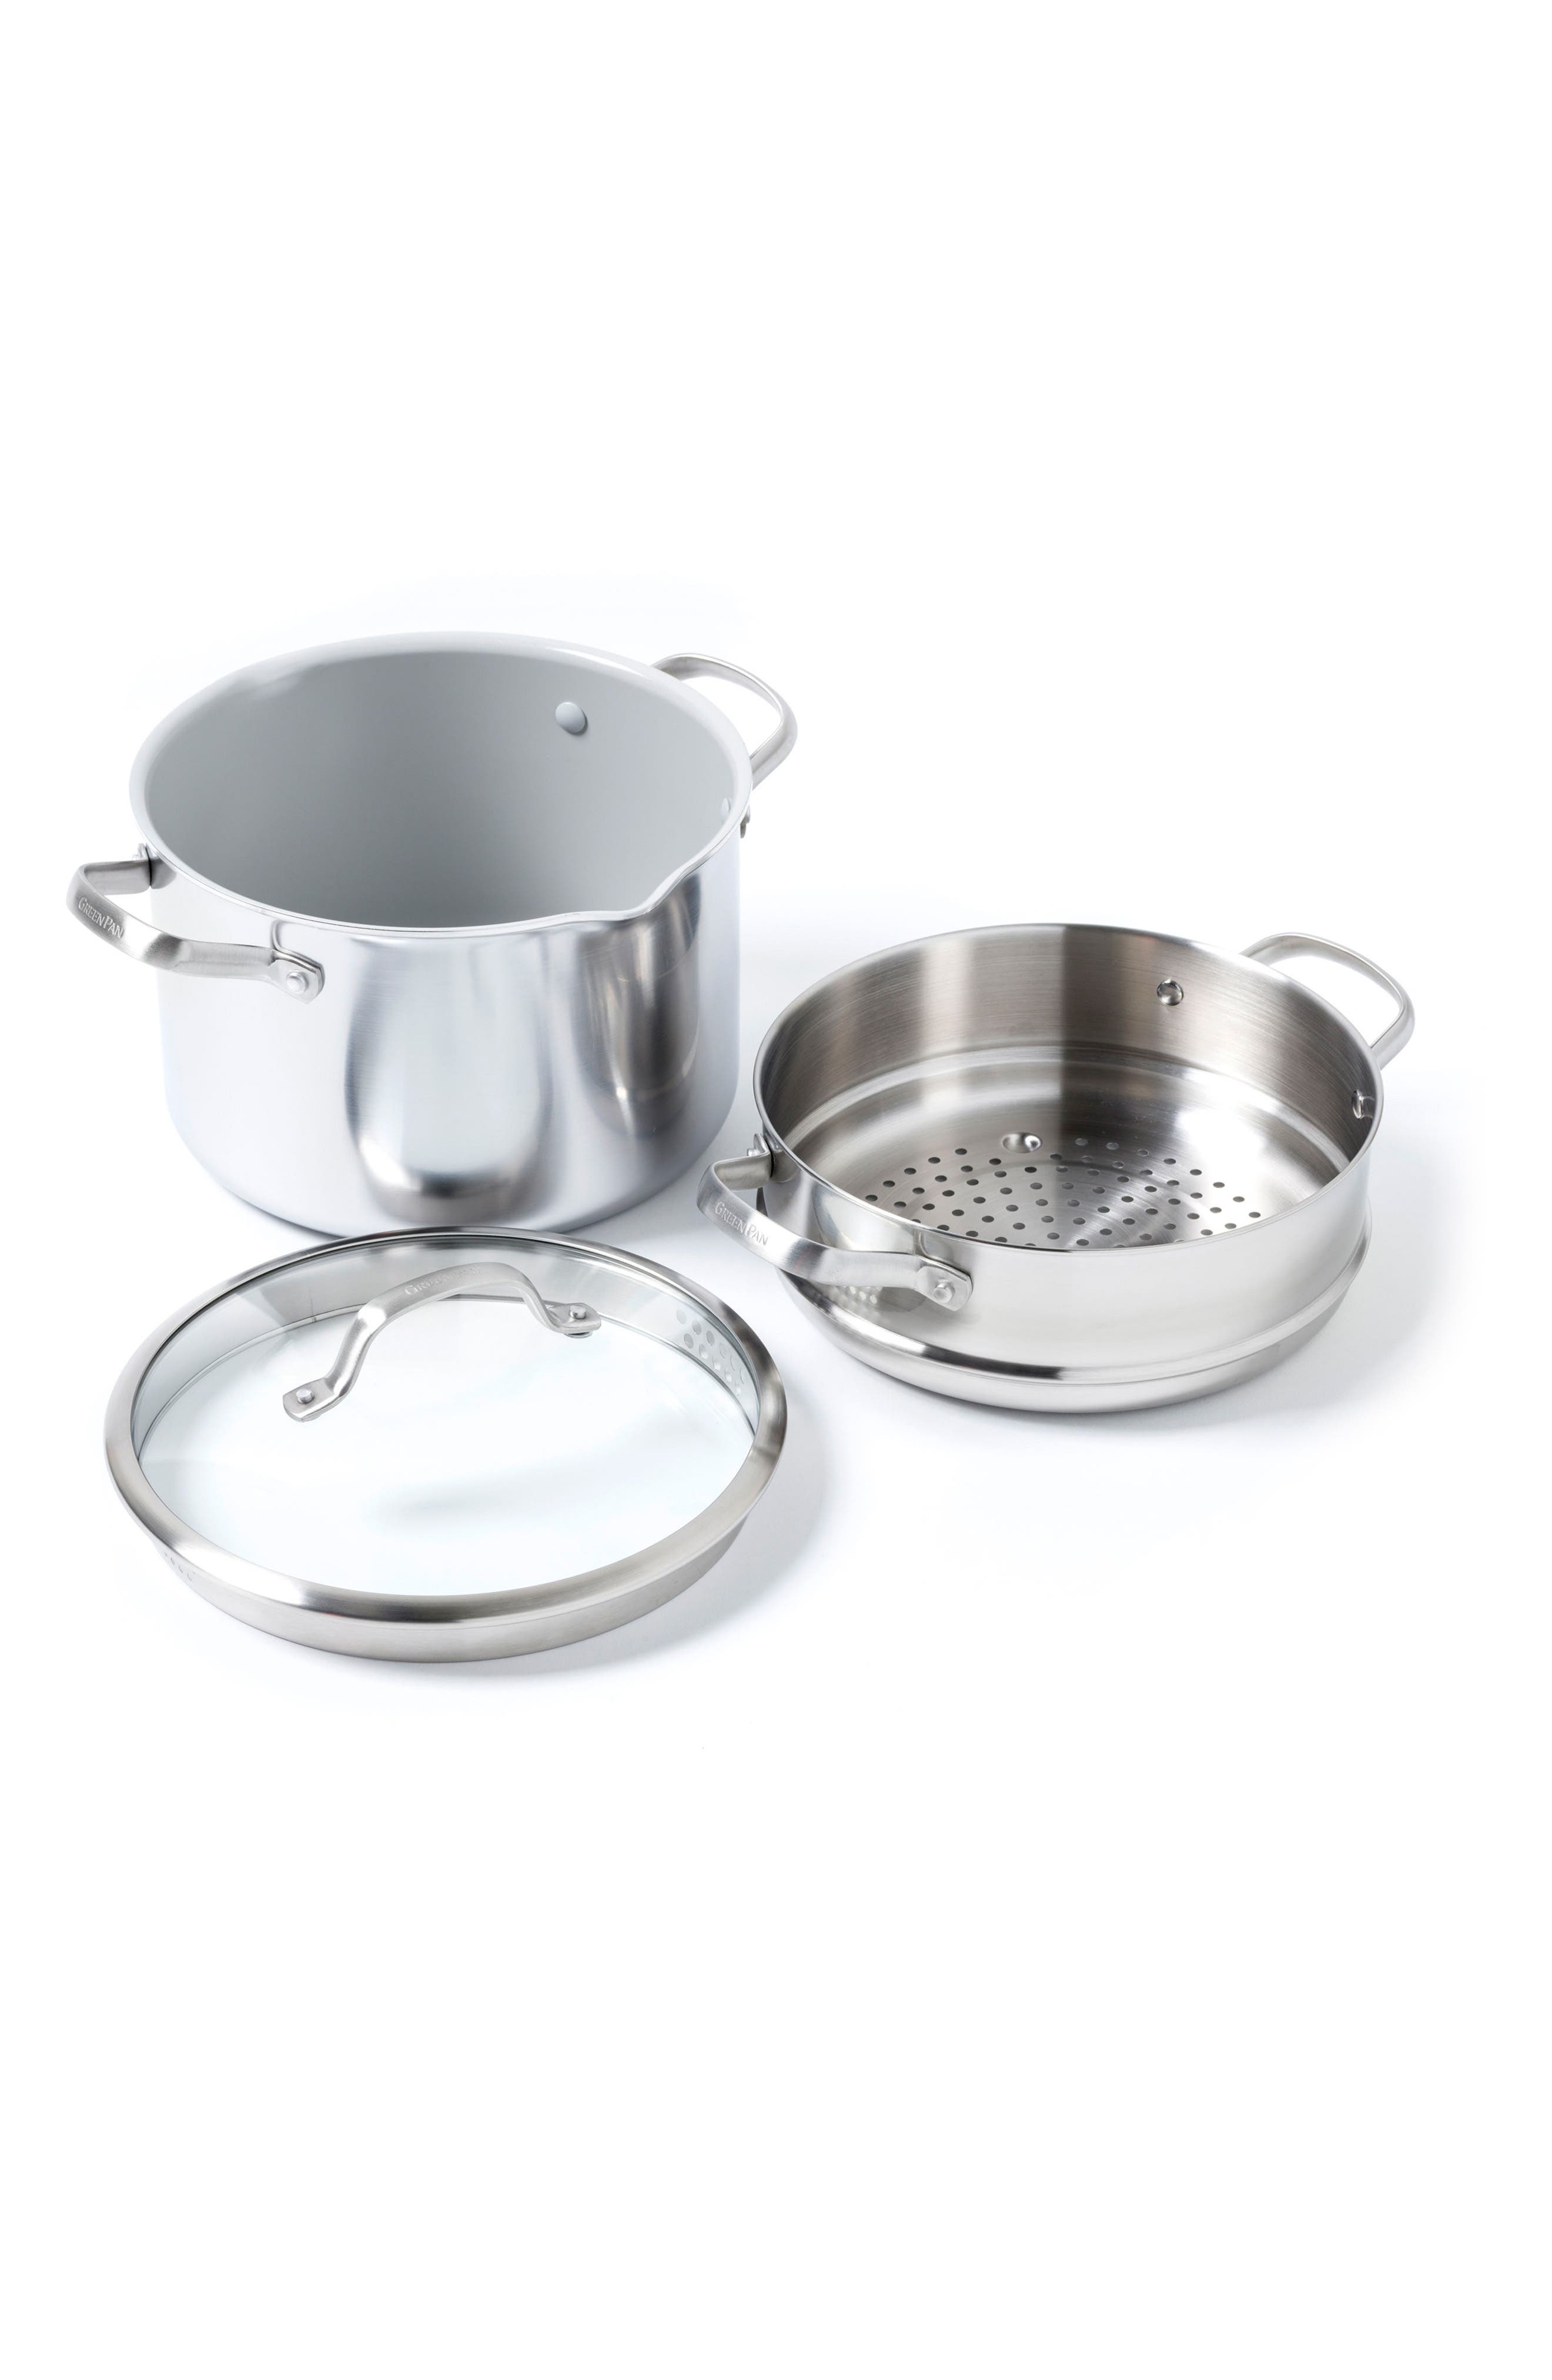 Main Image - GreenPan Venice Pro 8-Quart Multilayer Stainless Steel Ceramic Nonstick Stock Pot with Steamer Inset & Glass Lid